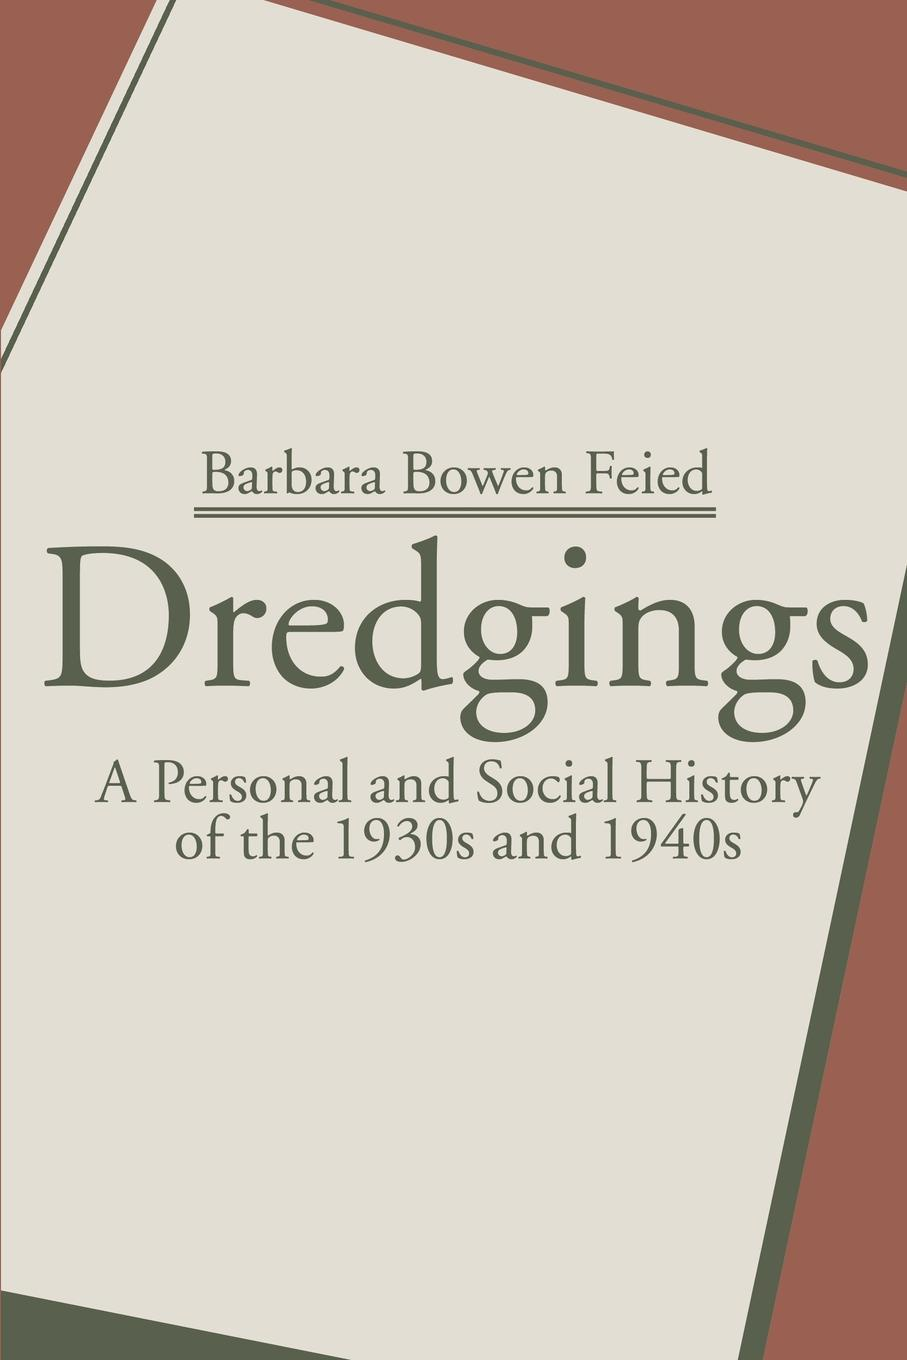 Barbara Bowen Feied Dredgings. A Personal and Social History of the 1930s and 1940s tanya fitzgerald josephine may portraying lives headmistresses and women professors 1880s 1940s